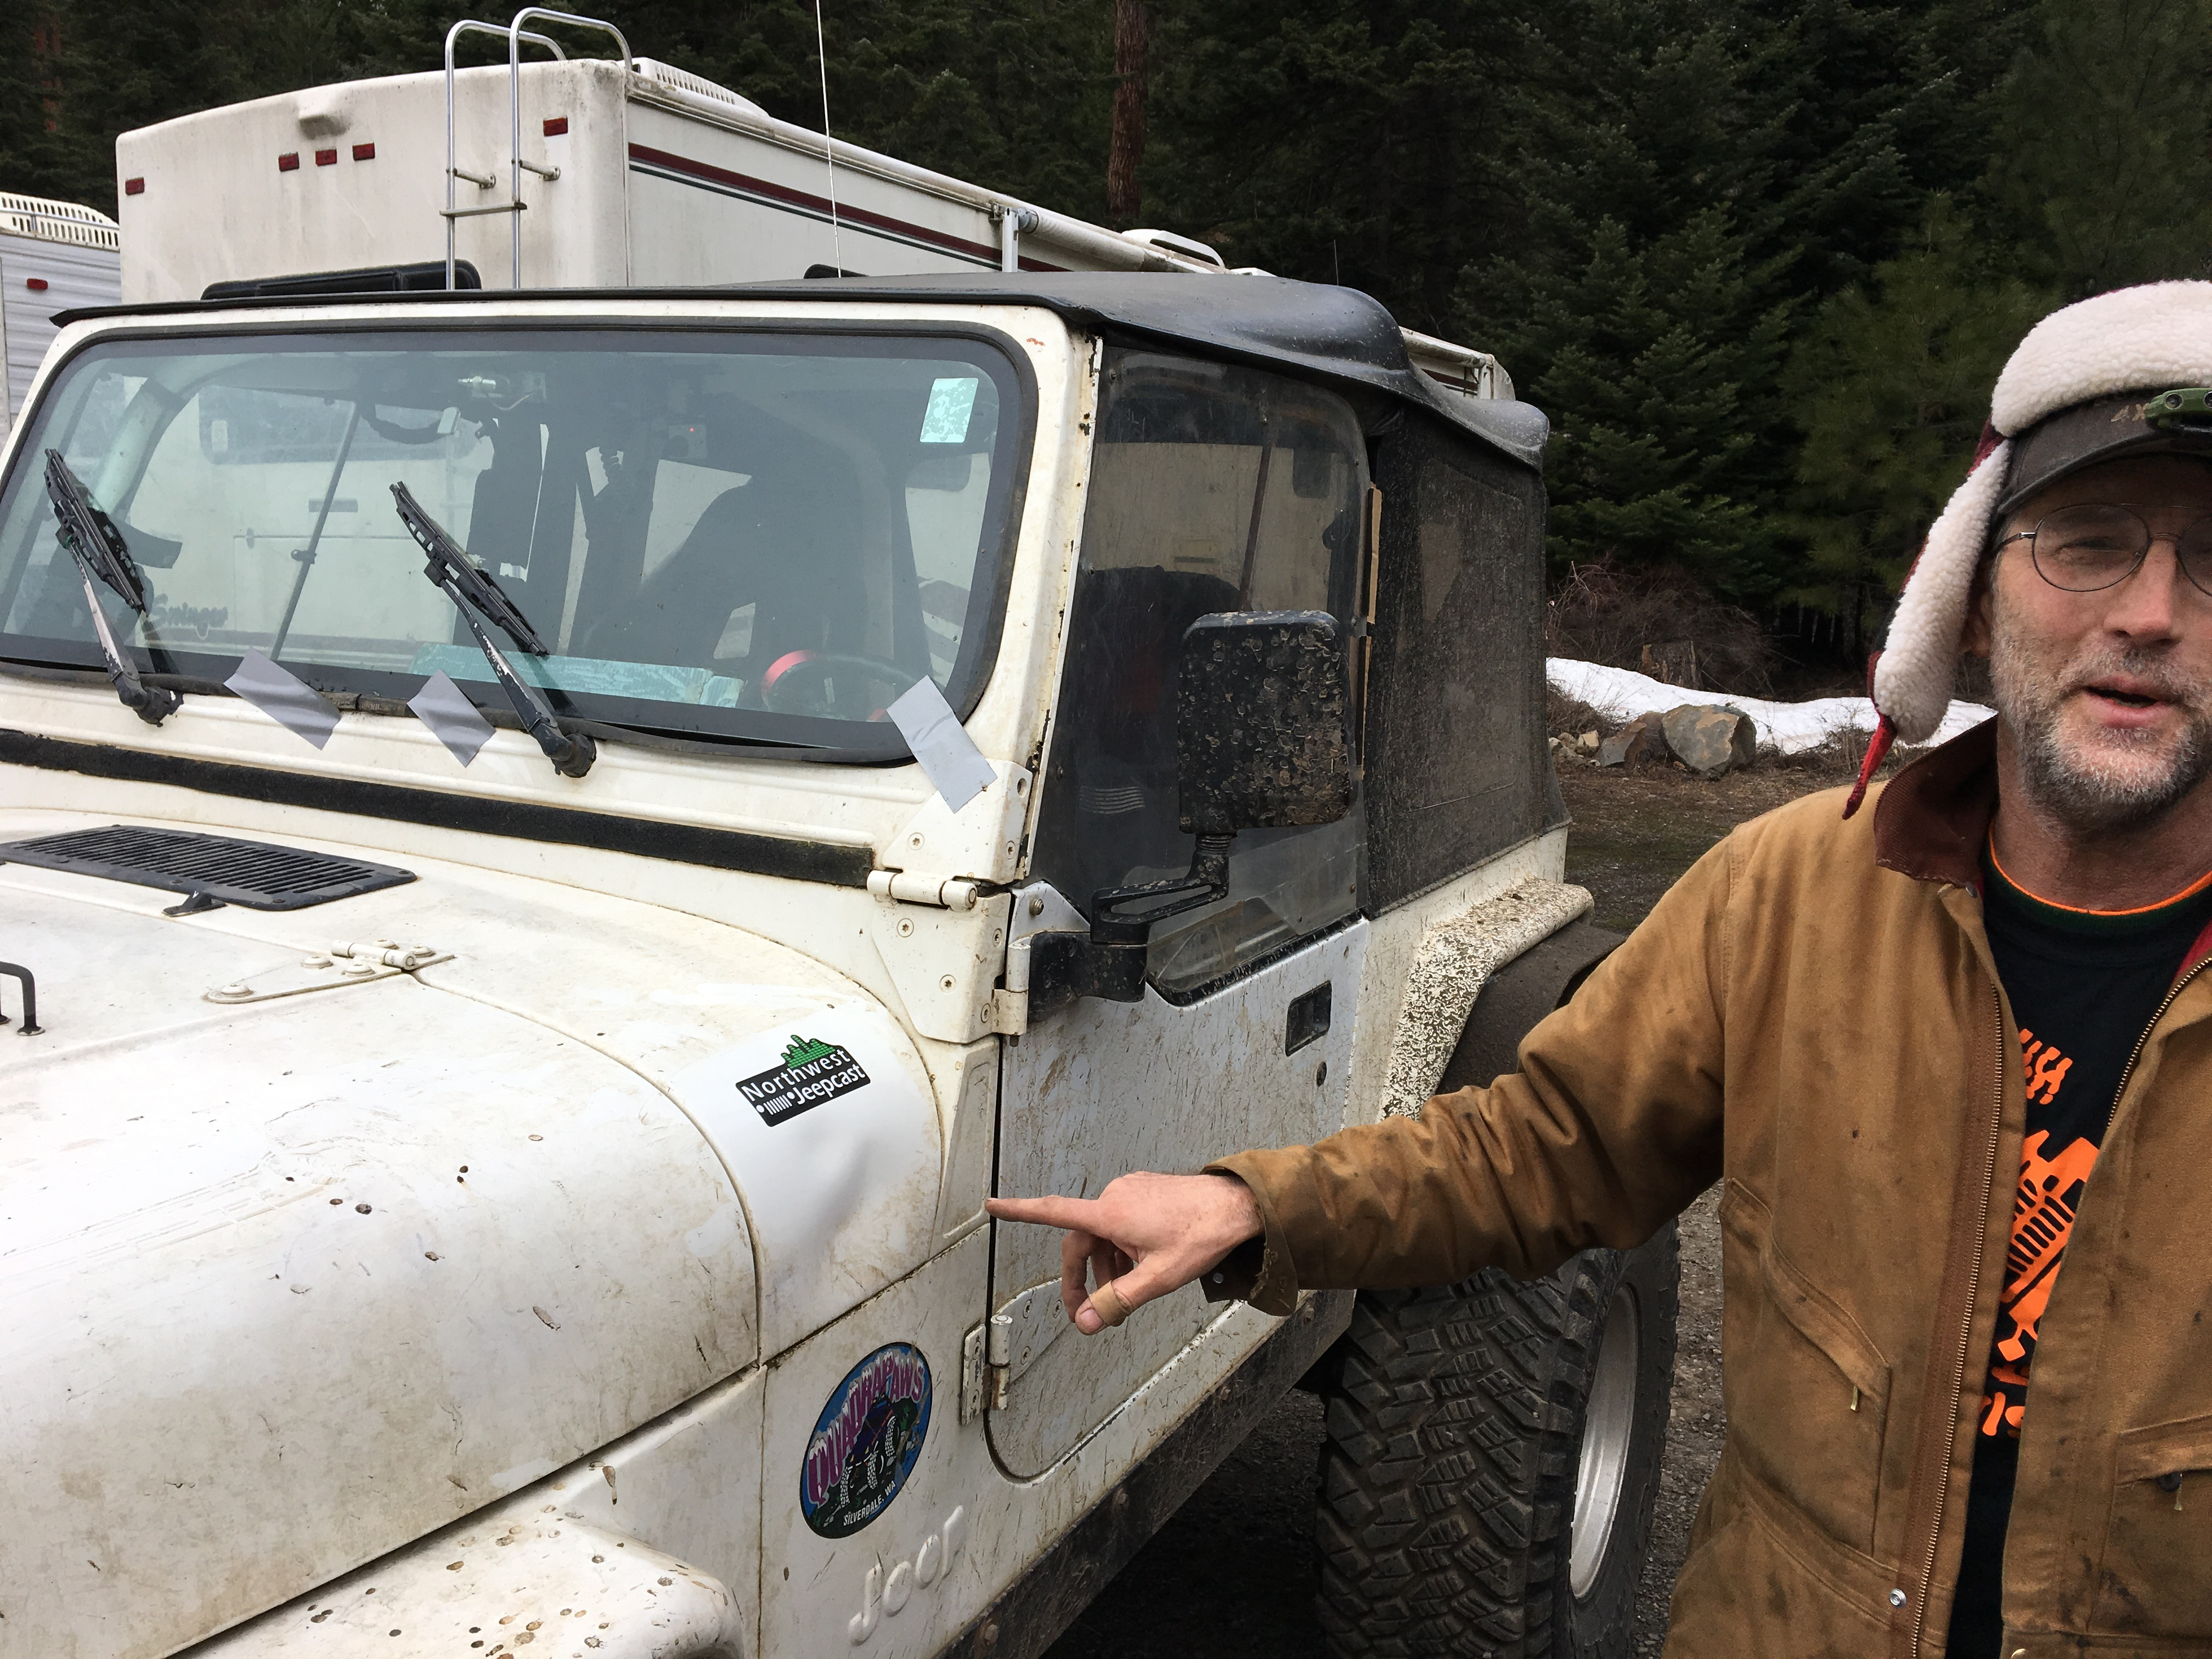 Northwest Jeepcast - A Jeep Podcast - Ahtanum